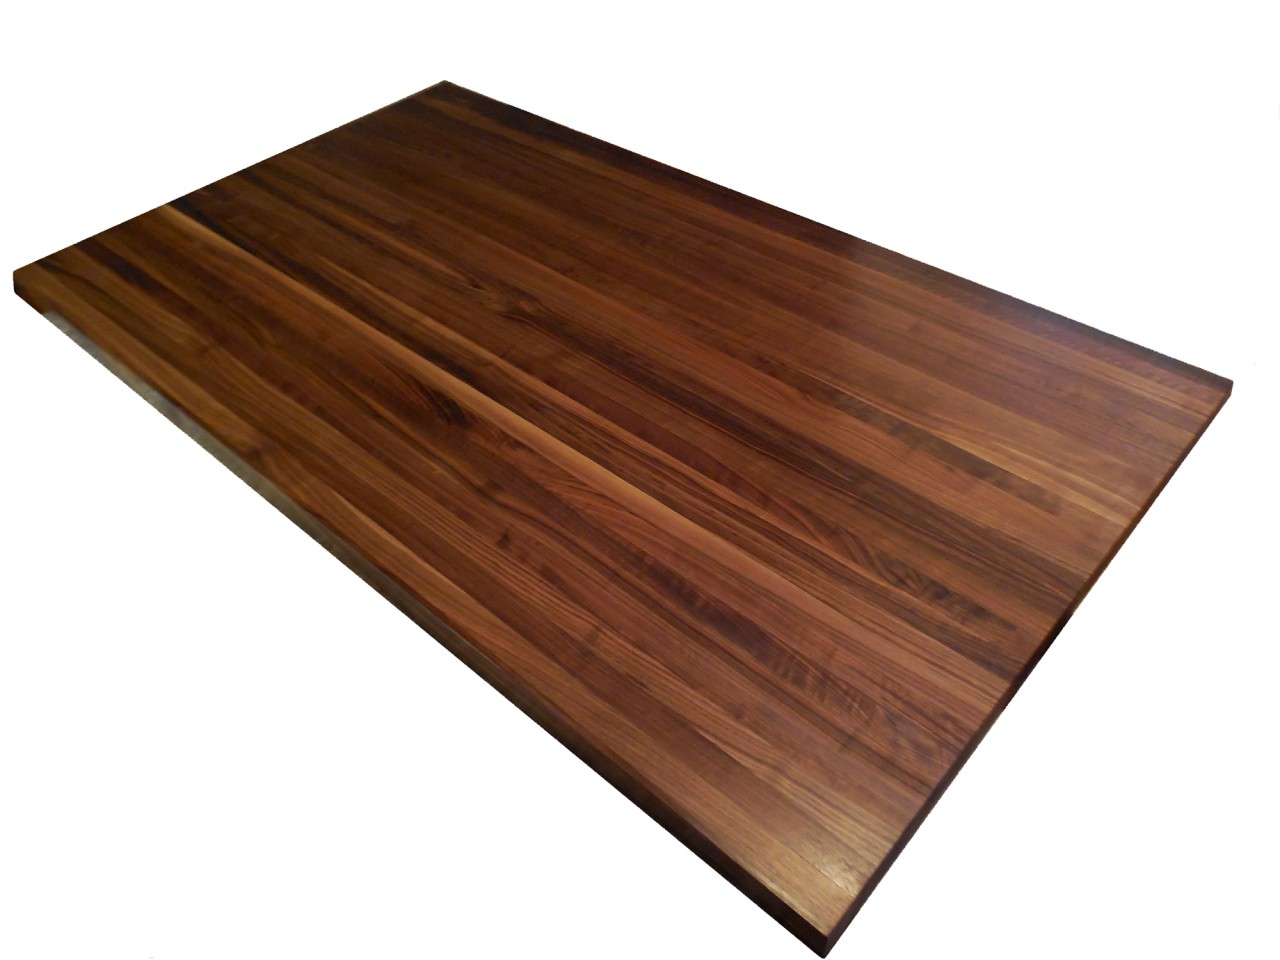 Armani Fine Woodworking Walnut Butcher Block Countertop